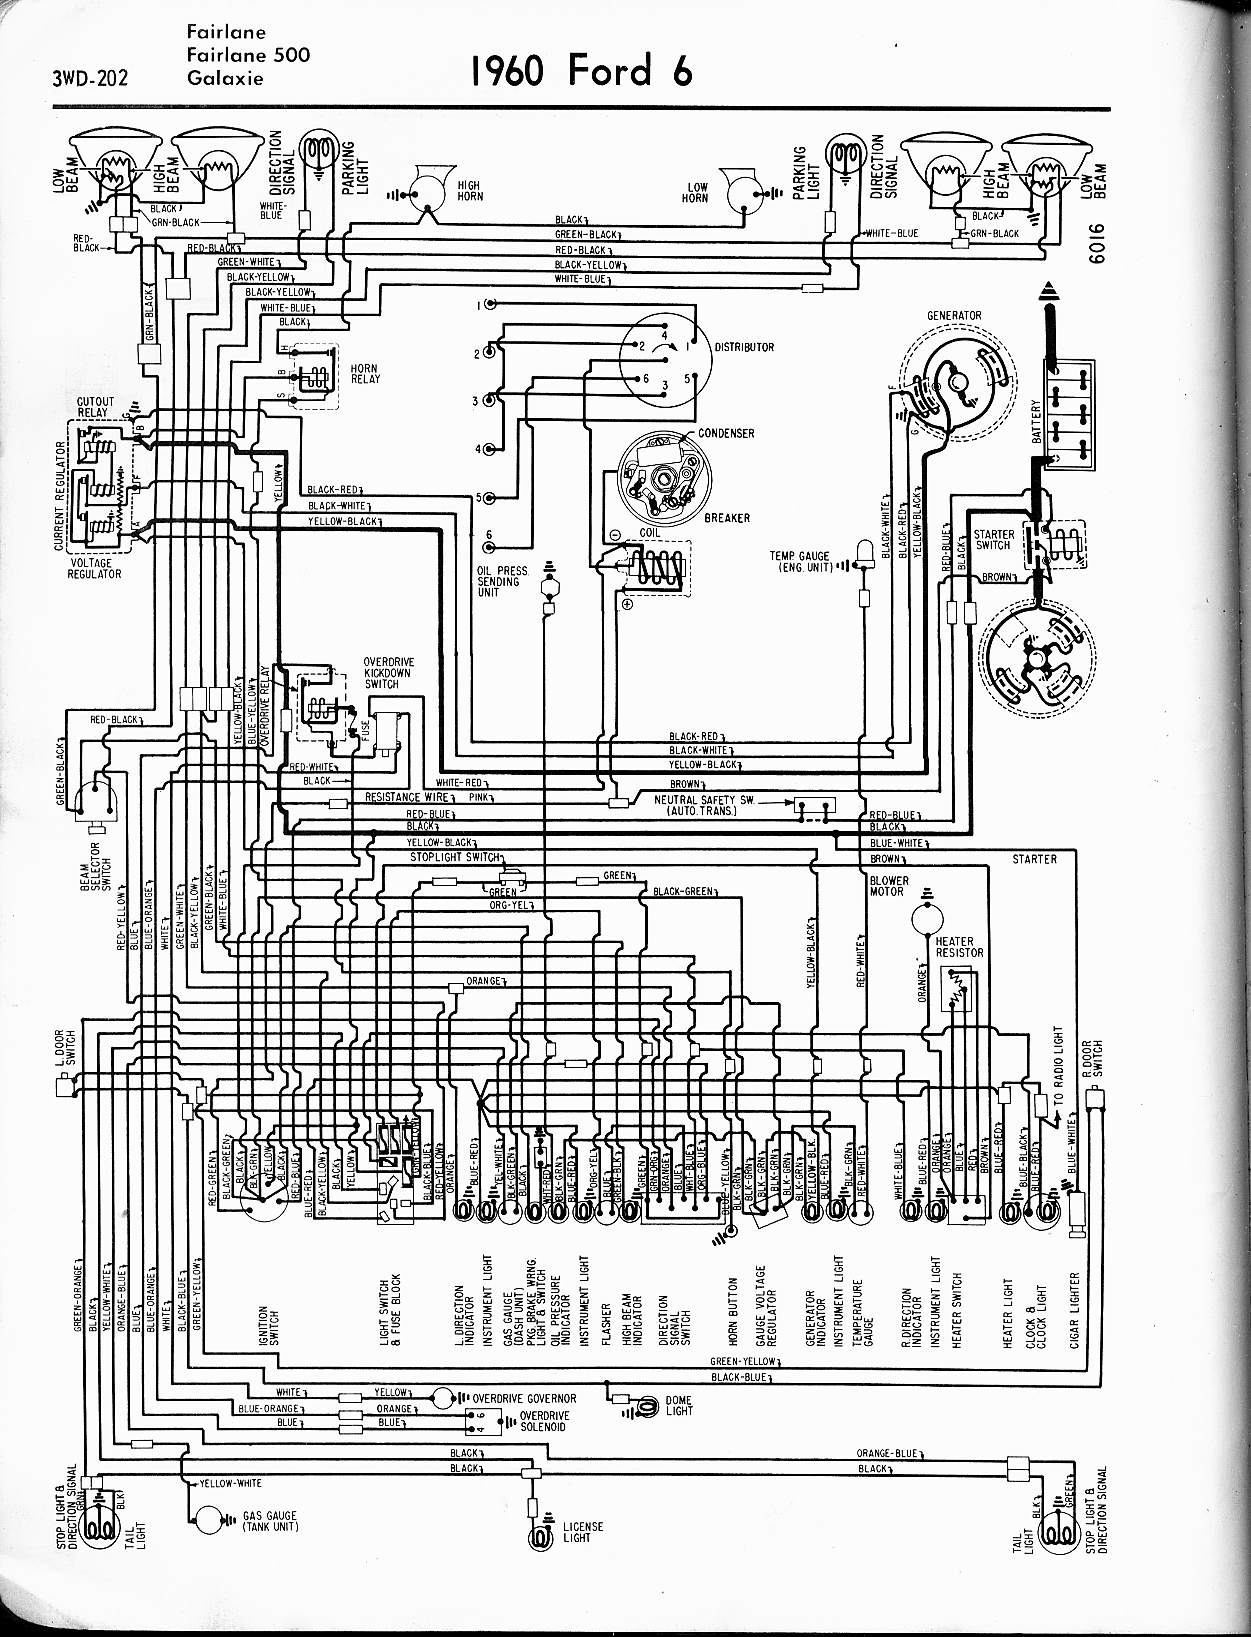 MWire5765 202 1960 ford wiring diagram 1964 ford ignition switch diagram 1964 Ford Fairlane at crackthecode.co